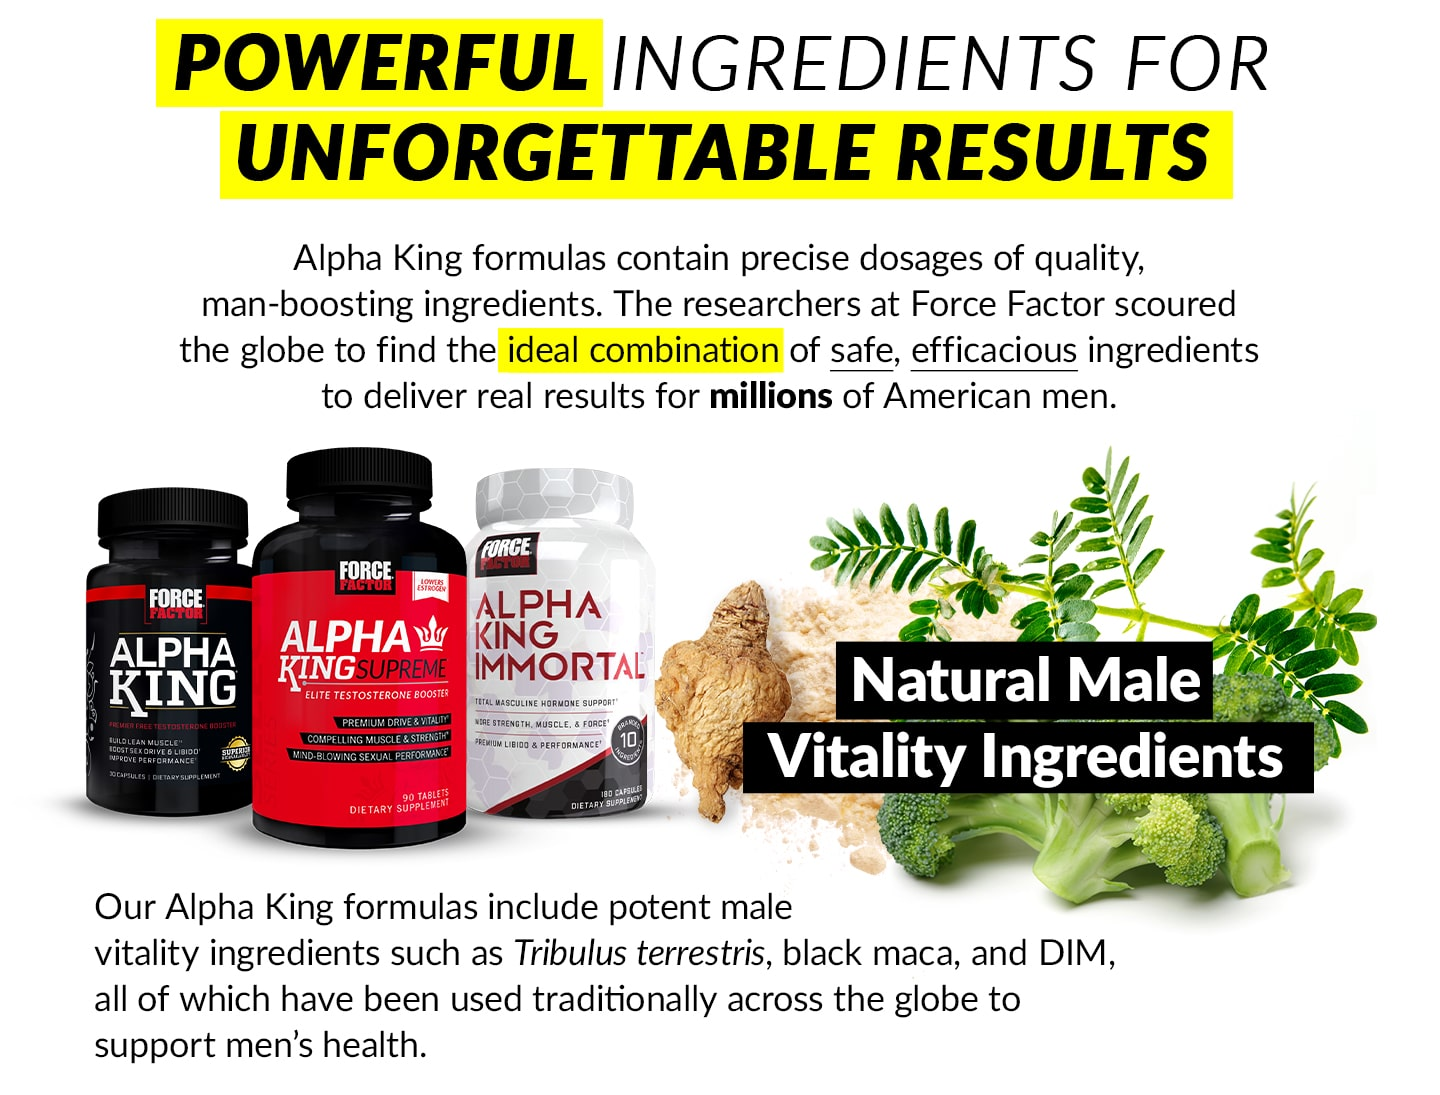 POWERFUL INGREDIENTS FOR UNFORGETTABLE RESULTS - Alpha King formulas contain precise dosages of quality, man-boosting ingredients. The researchers at Force Factor scoured the globe to find the ideal combination of safe, efficacious ingredients to deliver real results for millions of American men. Natural Male Vitality Ingredients - Our Alpha King formulas include potent male vitality ingredients such as Tribulus terrestris, black maca, and DIM, all of which have been used traditionally across the globe to support men's health.